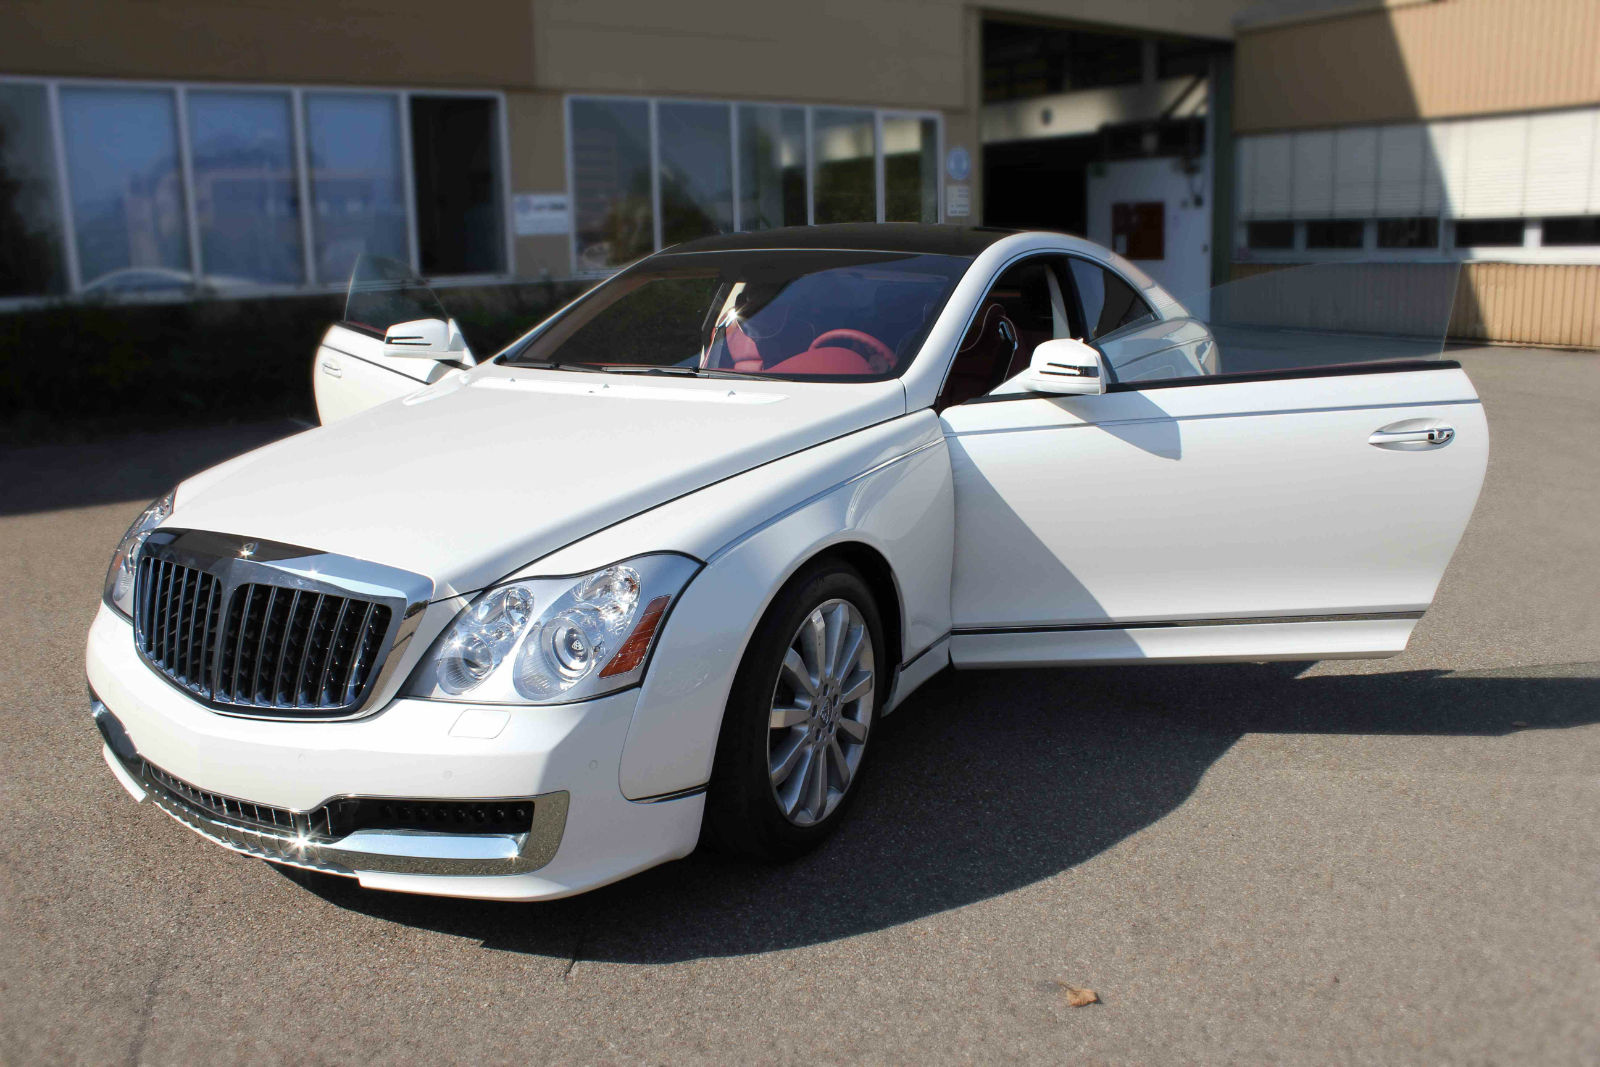 maybach 57 s coupé will live to see another day and more customers